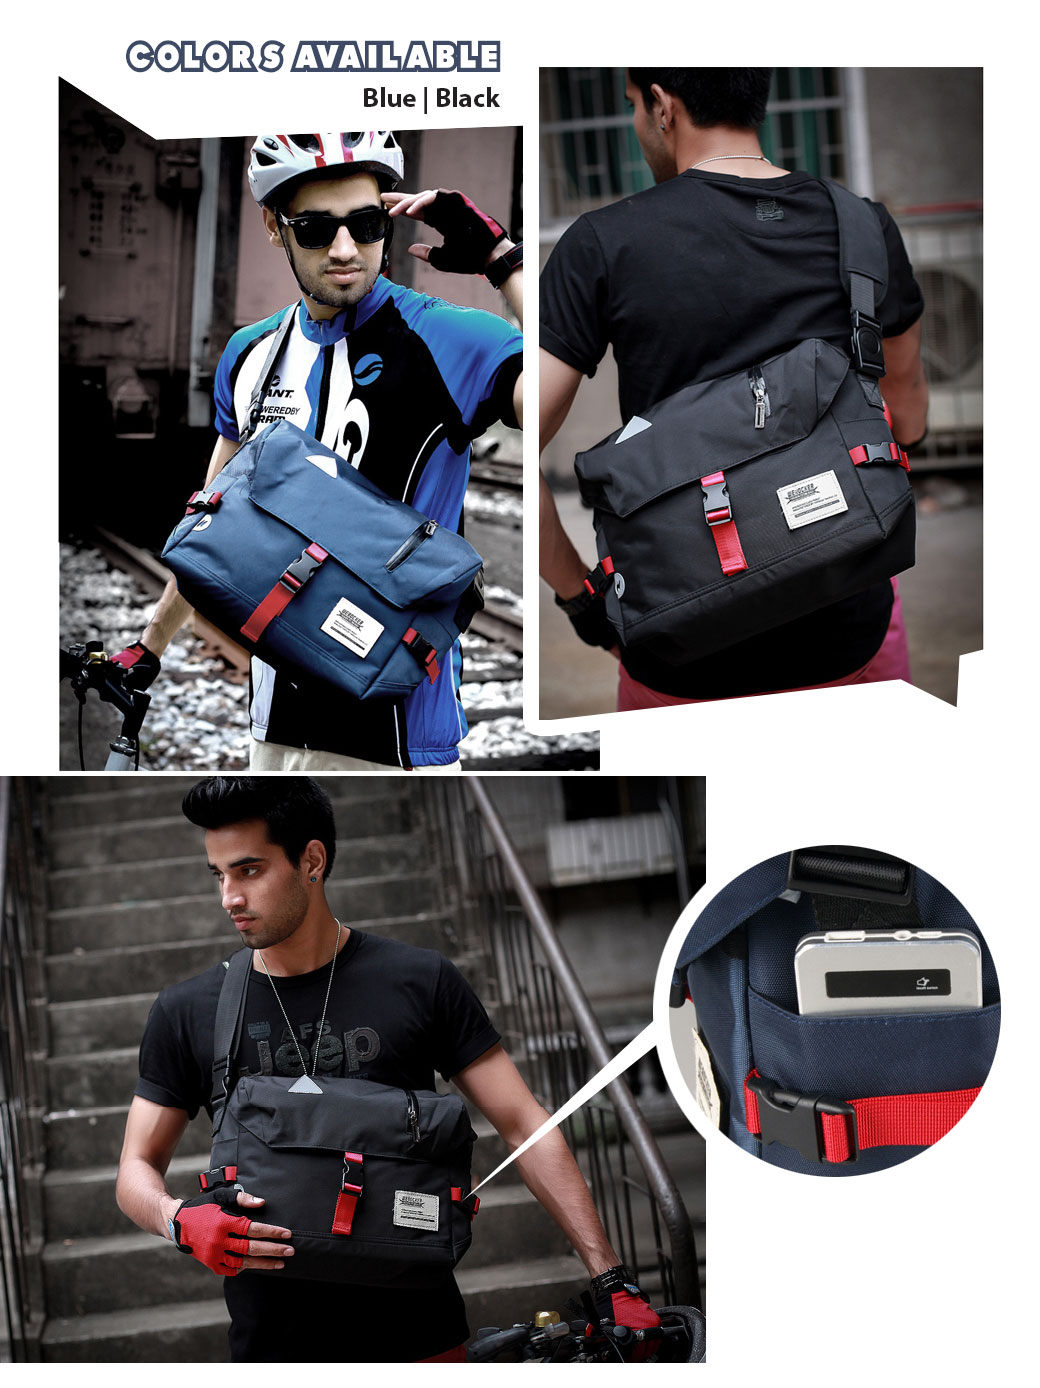 2bf5aa62d6c5 Flash Messenger Sling Bag Shoulder Outdoor Casual Backpack Bag. To improve  your shopping experience